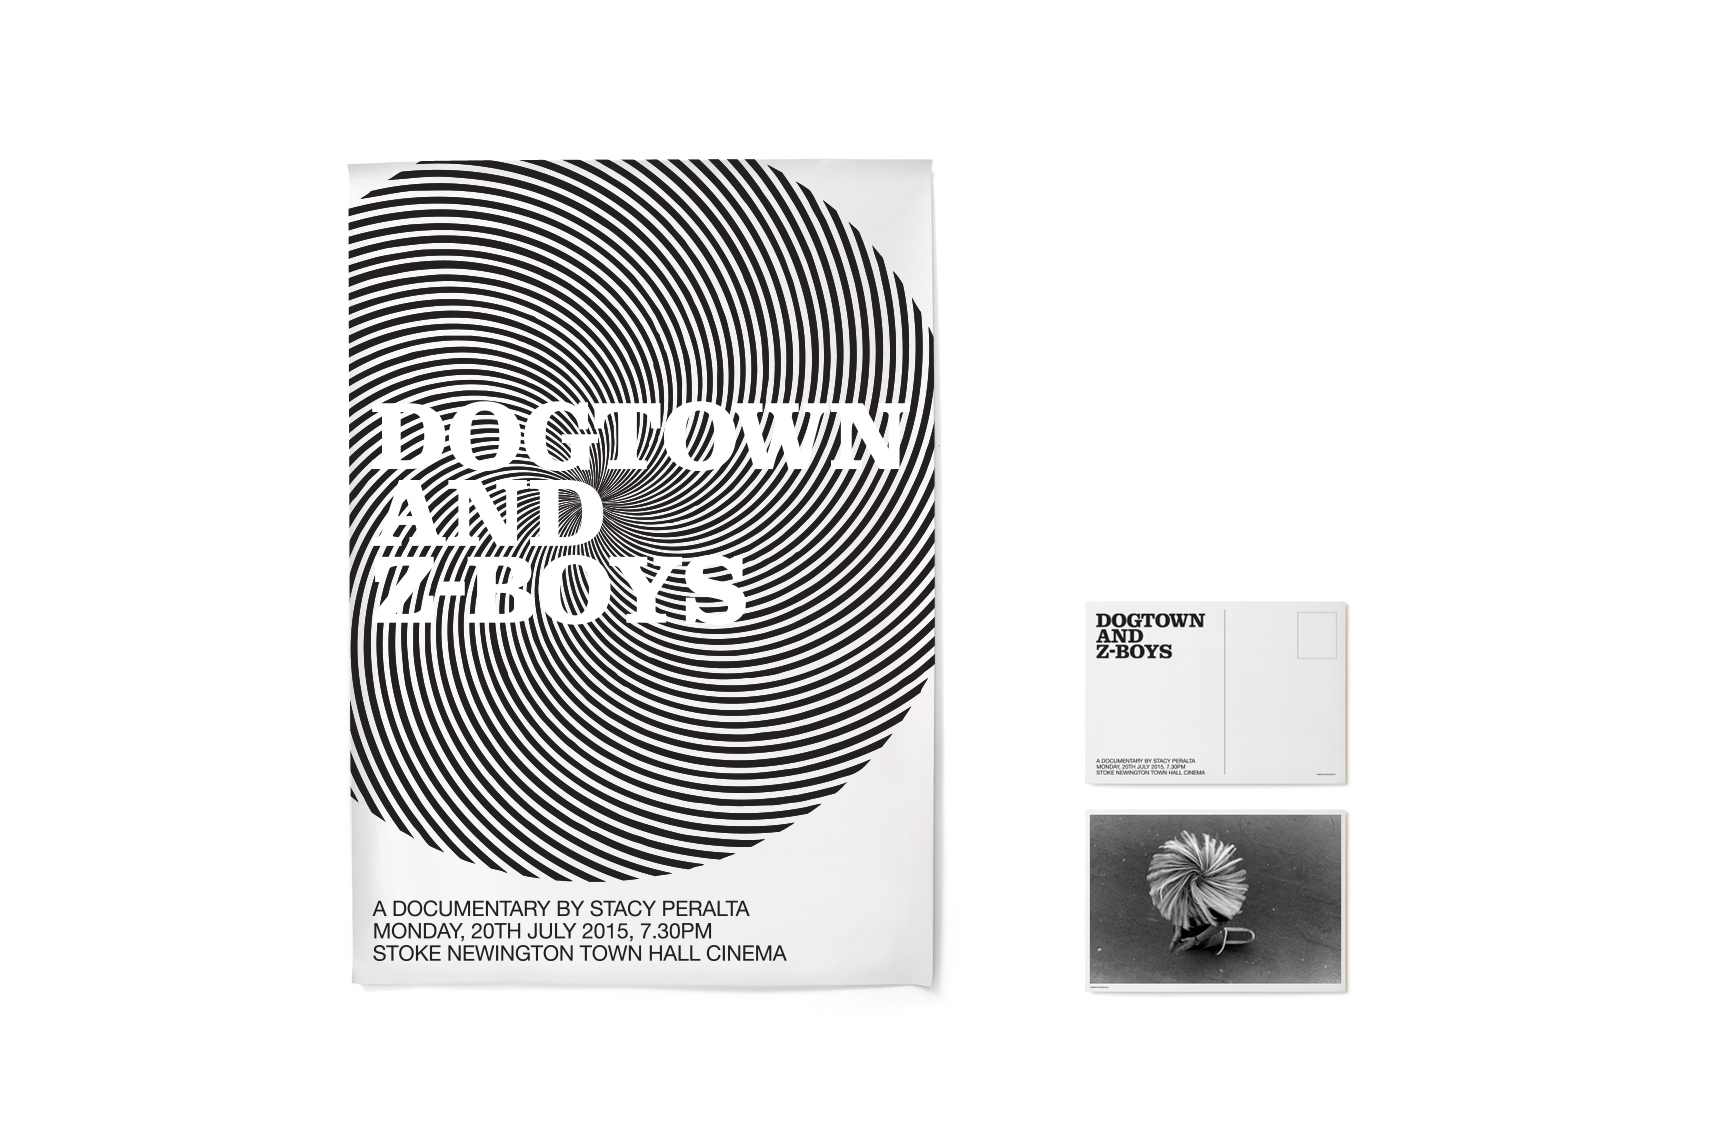 Dogtown_poster_01